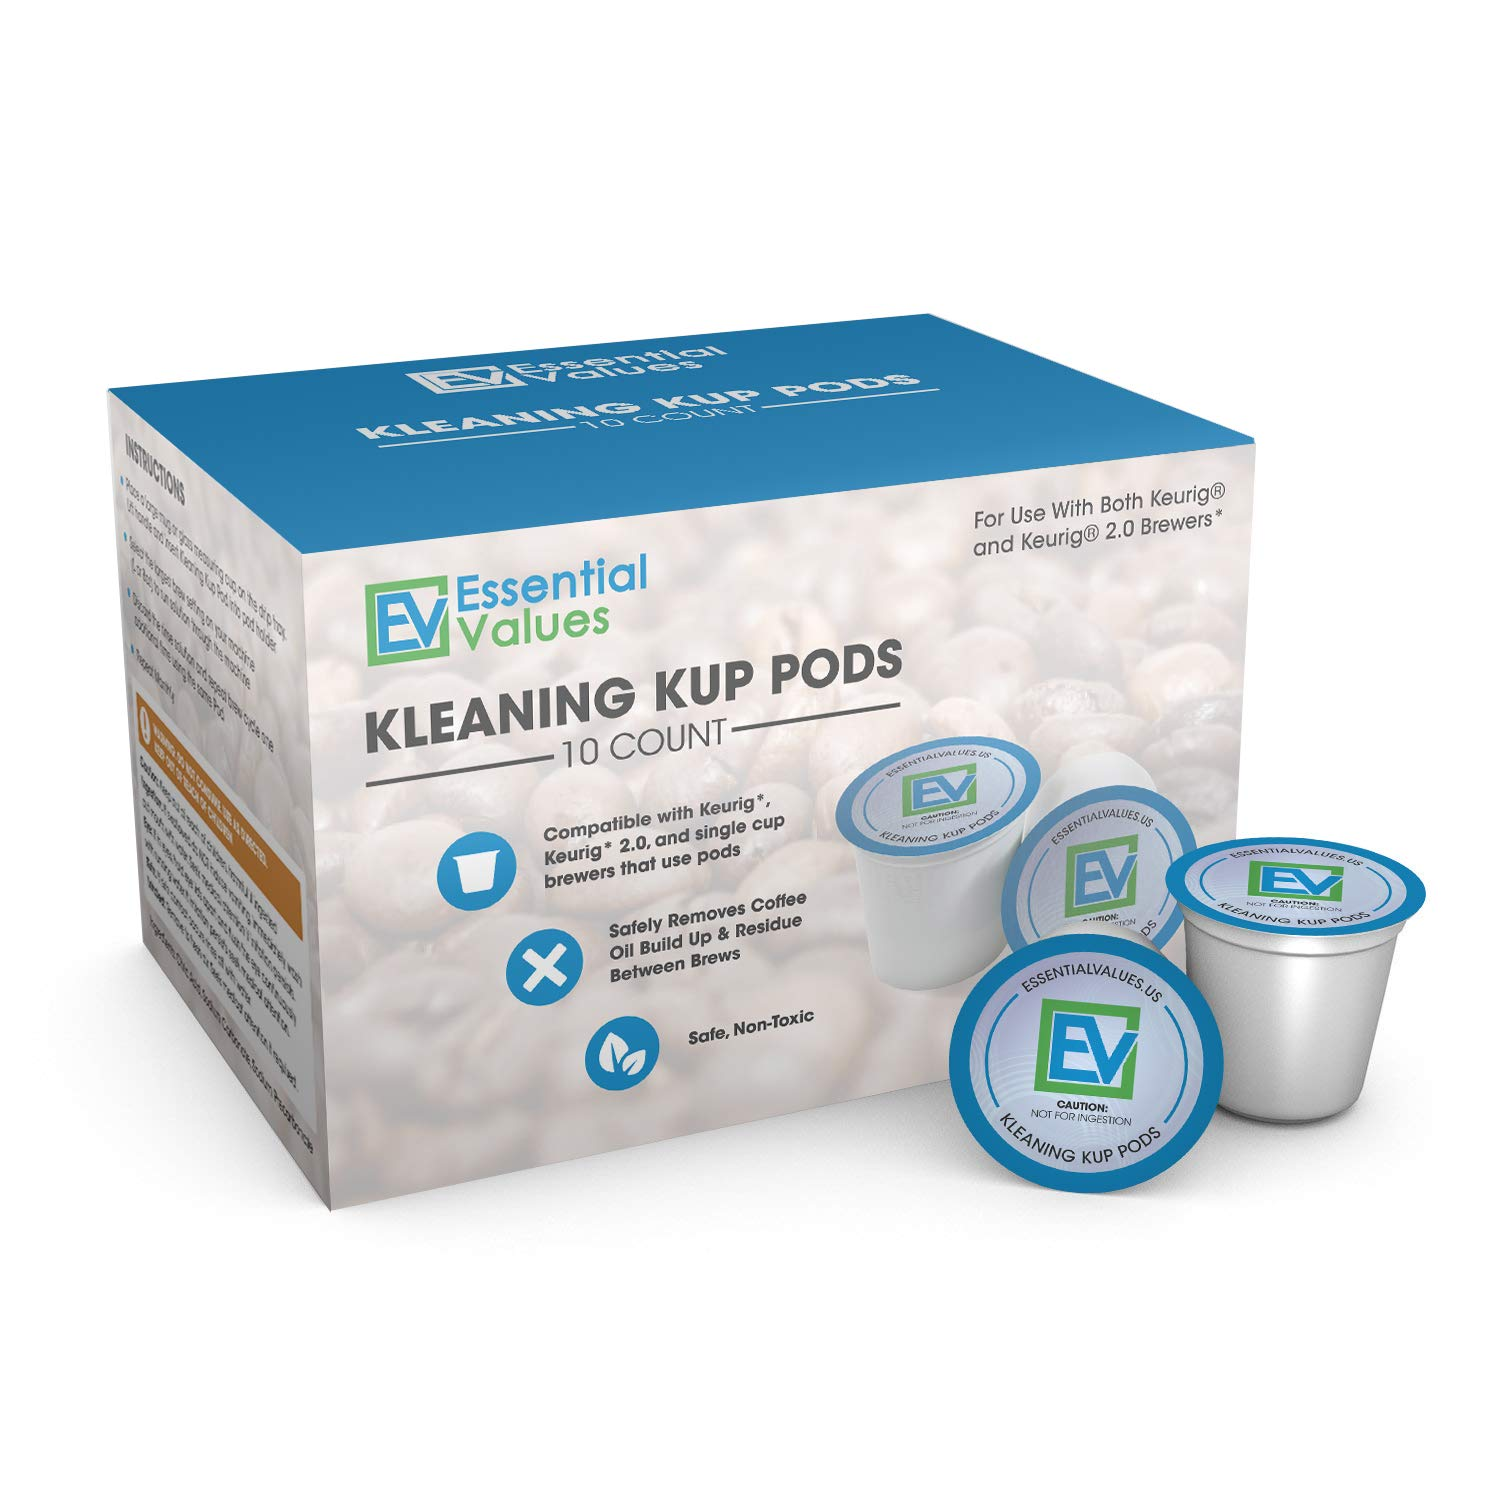 Essential Values 10PK Cleaning & Rinse K Cup Pods For All Keurig Machines, 2.0 Compatible